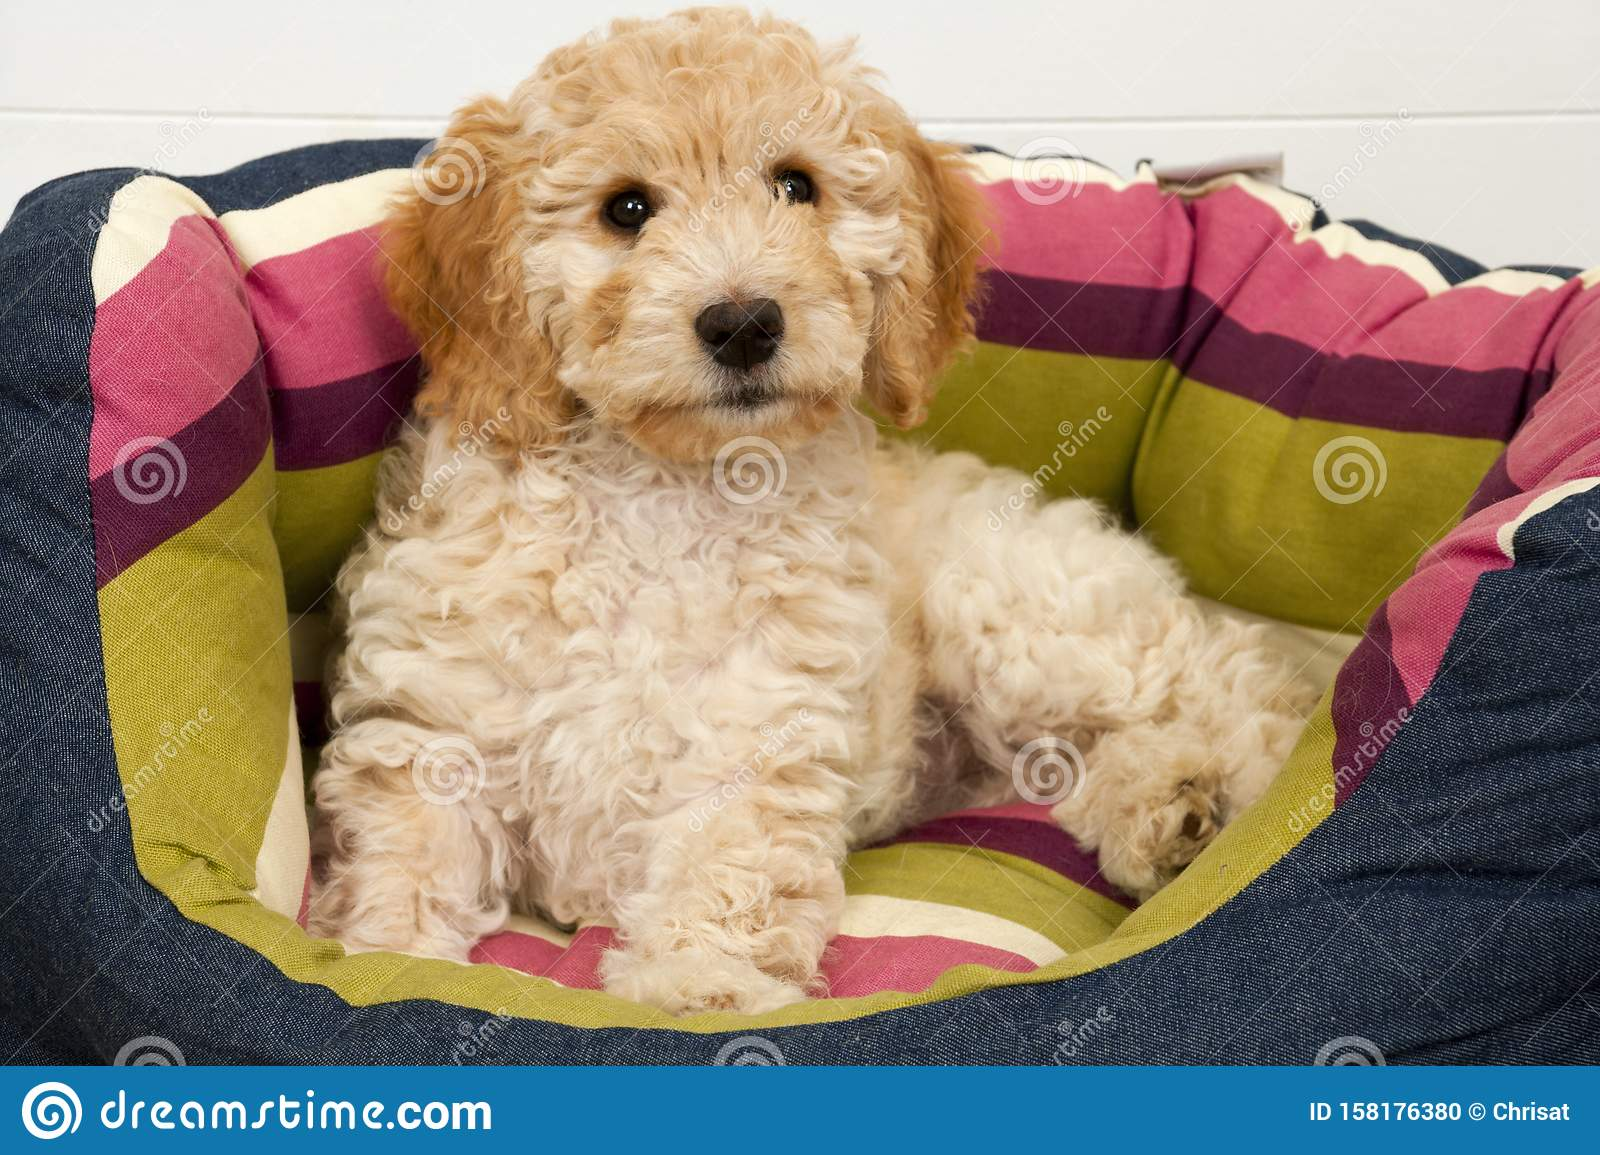 A cute Cockapoo puppy in her new bed